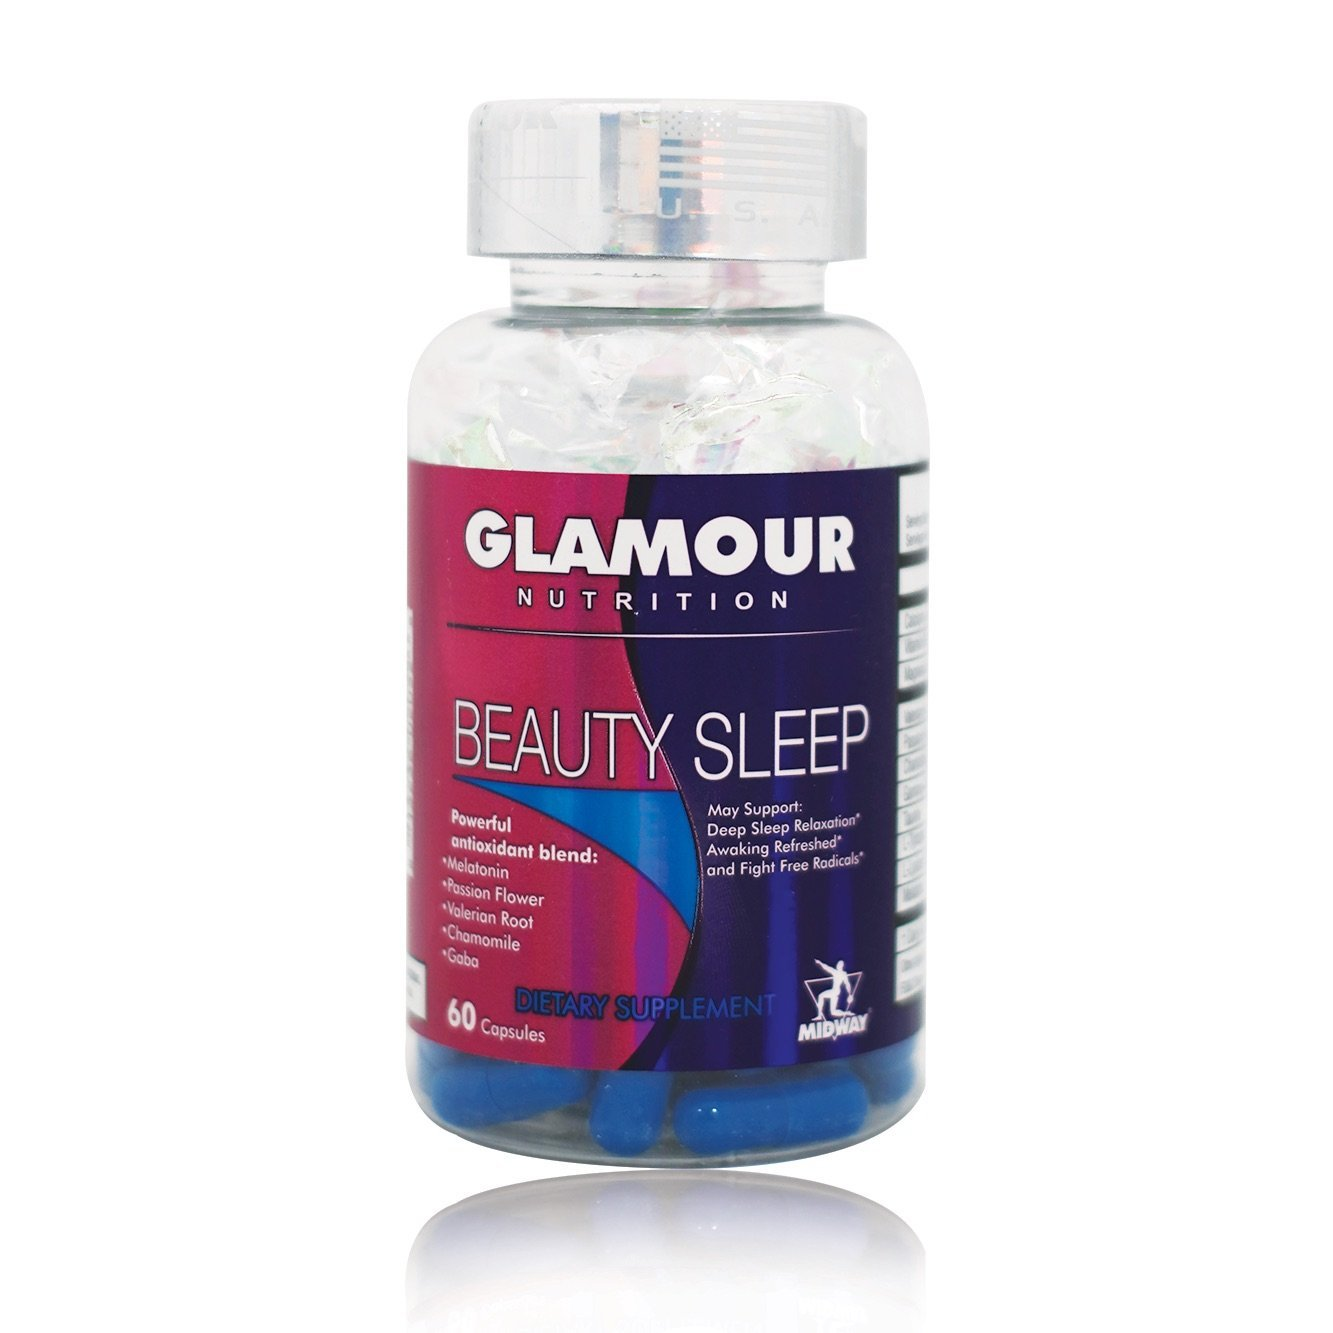 Midway labs Glamour Nutrition Beauty Sleep, 60 Capsule